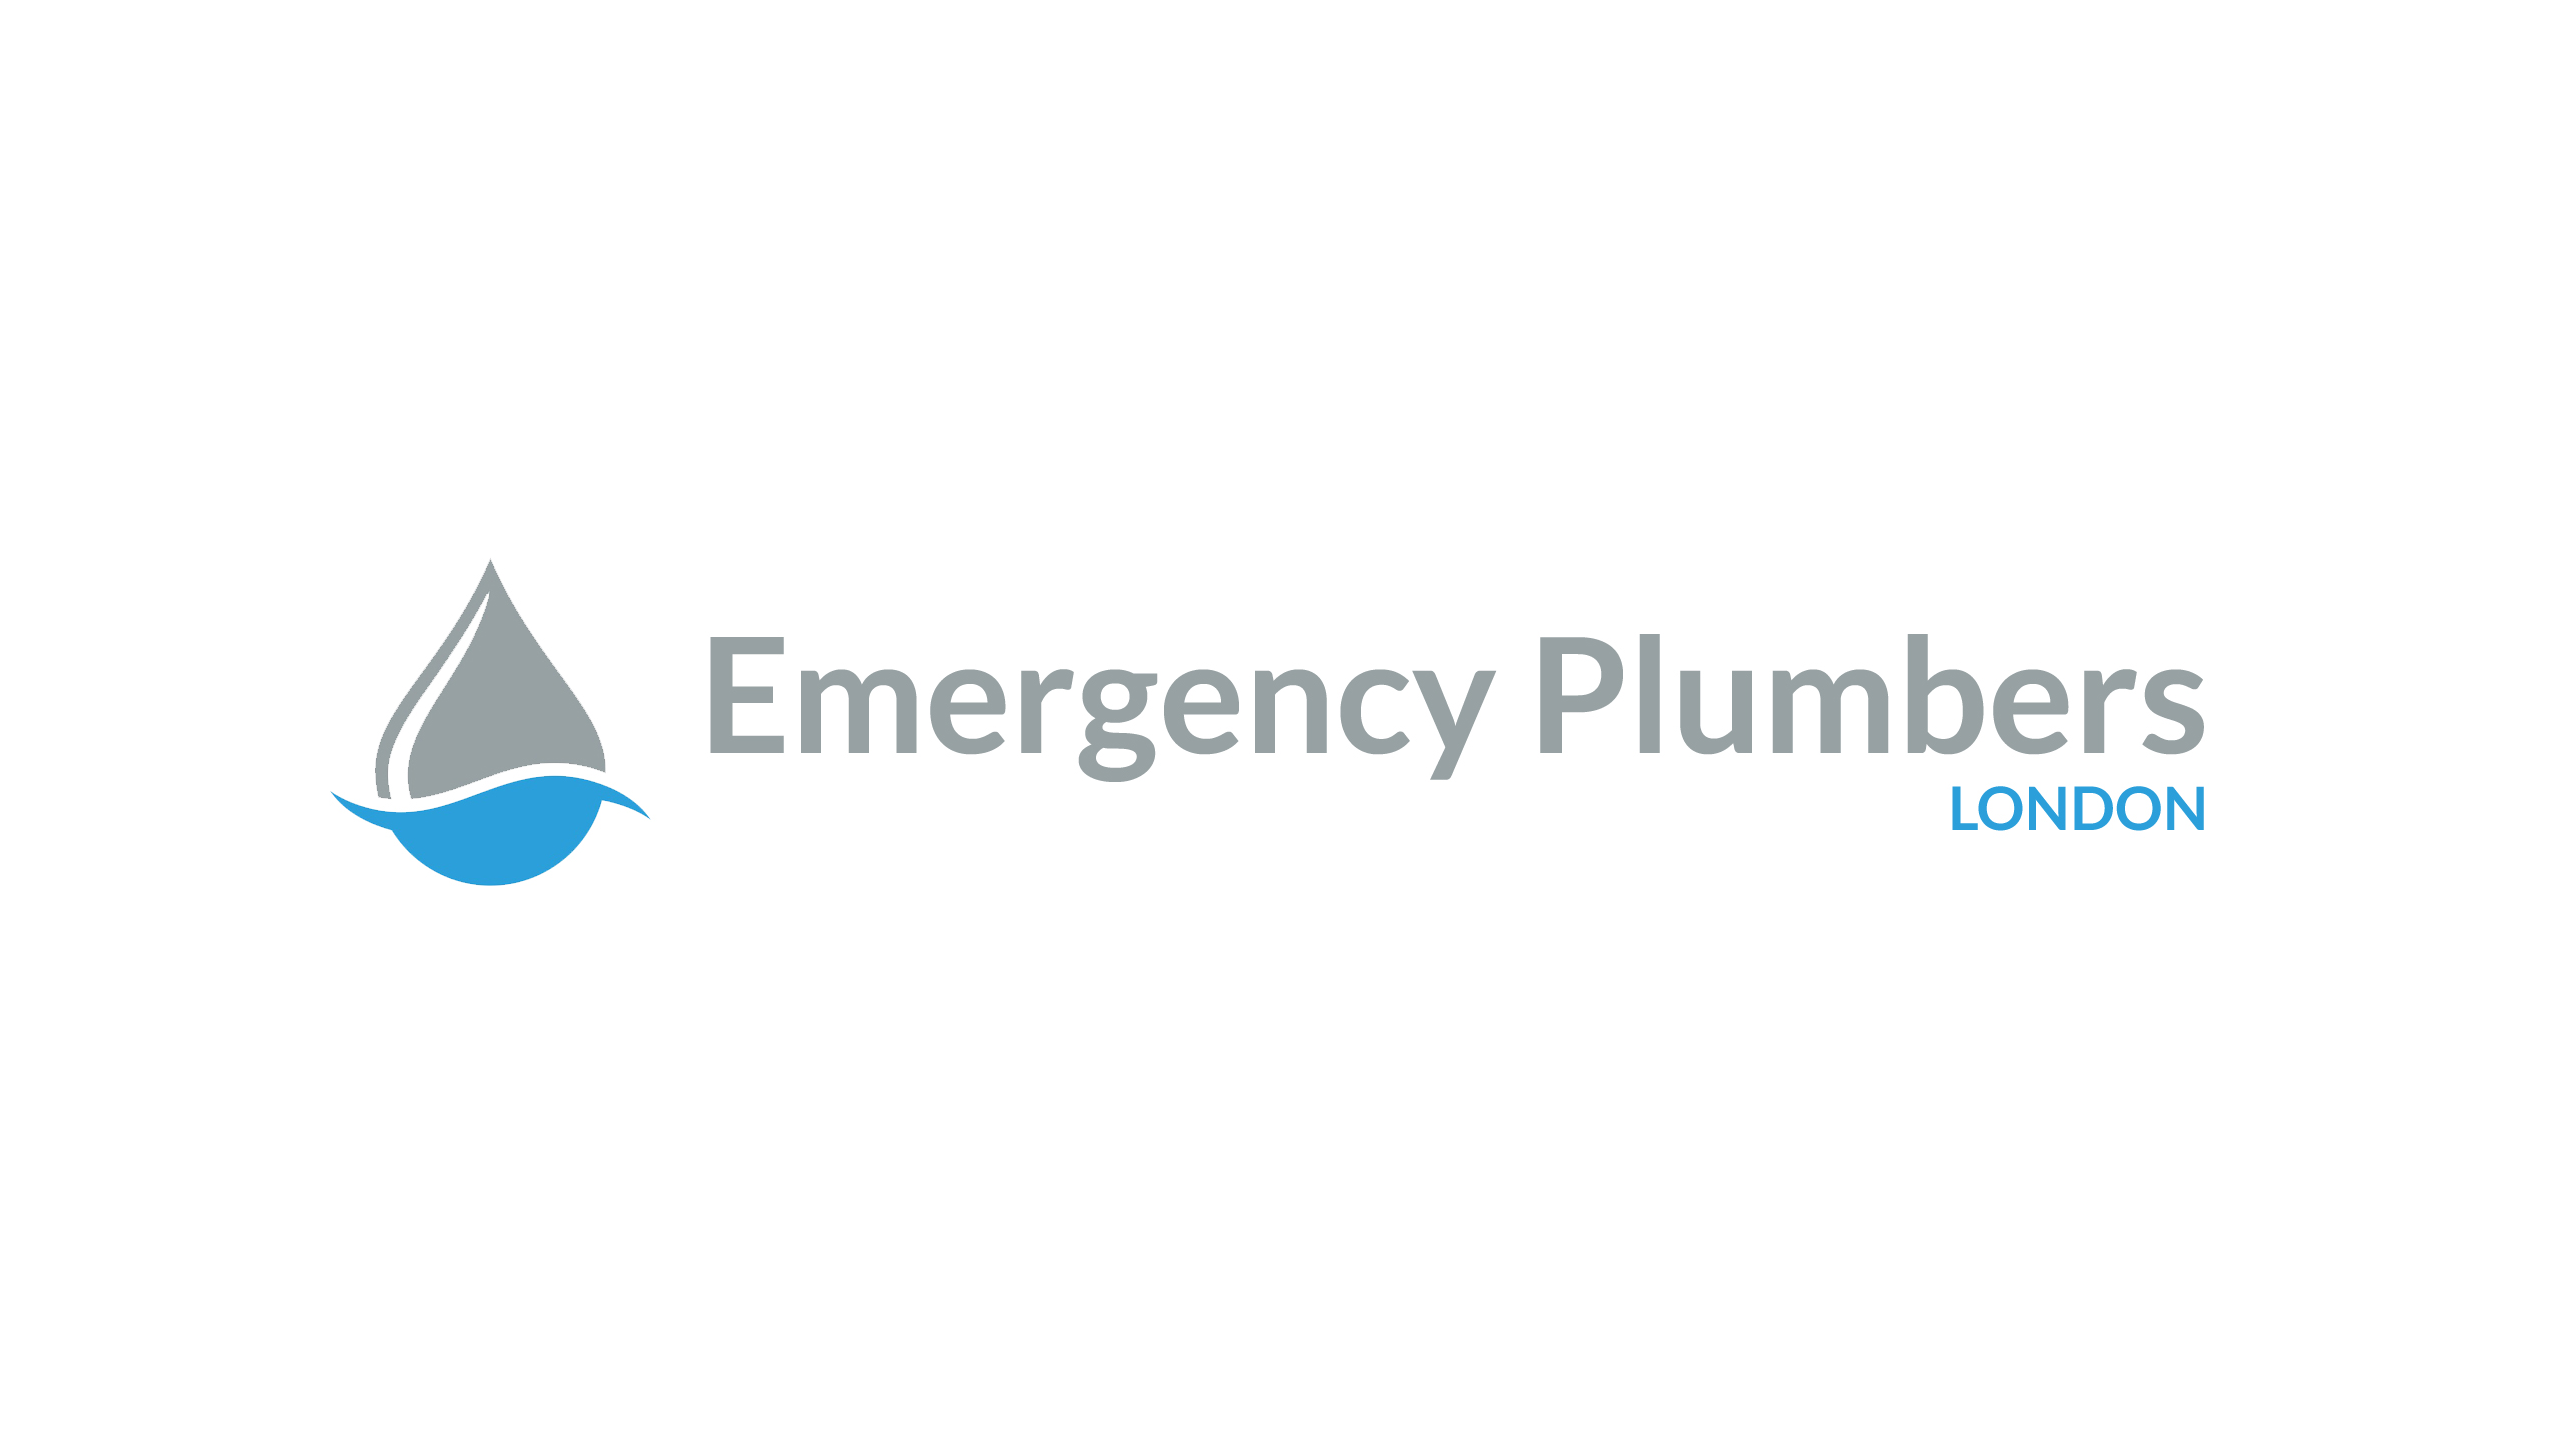 Emergency Plumbers London on YouTube https://www.youtube.com/channel/UClCDWpBBFANnMS6uayhWu2A #EmergencyPlumbers #Plumbers #Plumbing #London  Highly Recommended Emergency Plumbers in London. 24 Hour Urgent Plumbing Service. Fast. Reliable. Efficient. Call Us on 020 3389 5006.  Emergency Plumbers London  Kemp House 152 City Road London EC1V 2NX  020 3389 5006  helpdesk@emergencyplumberslondon.org  http://emergencyplumberslondon.org